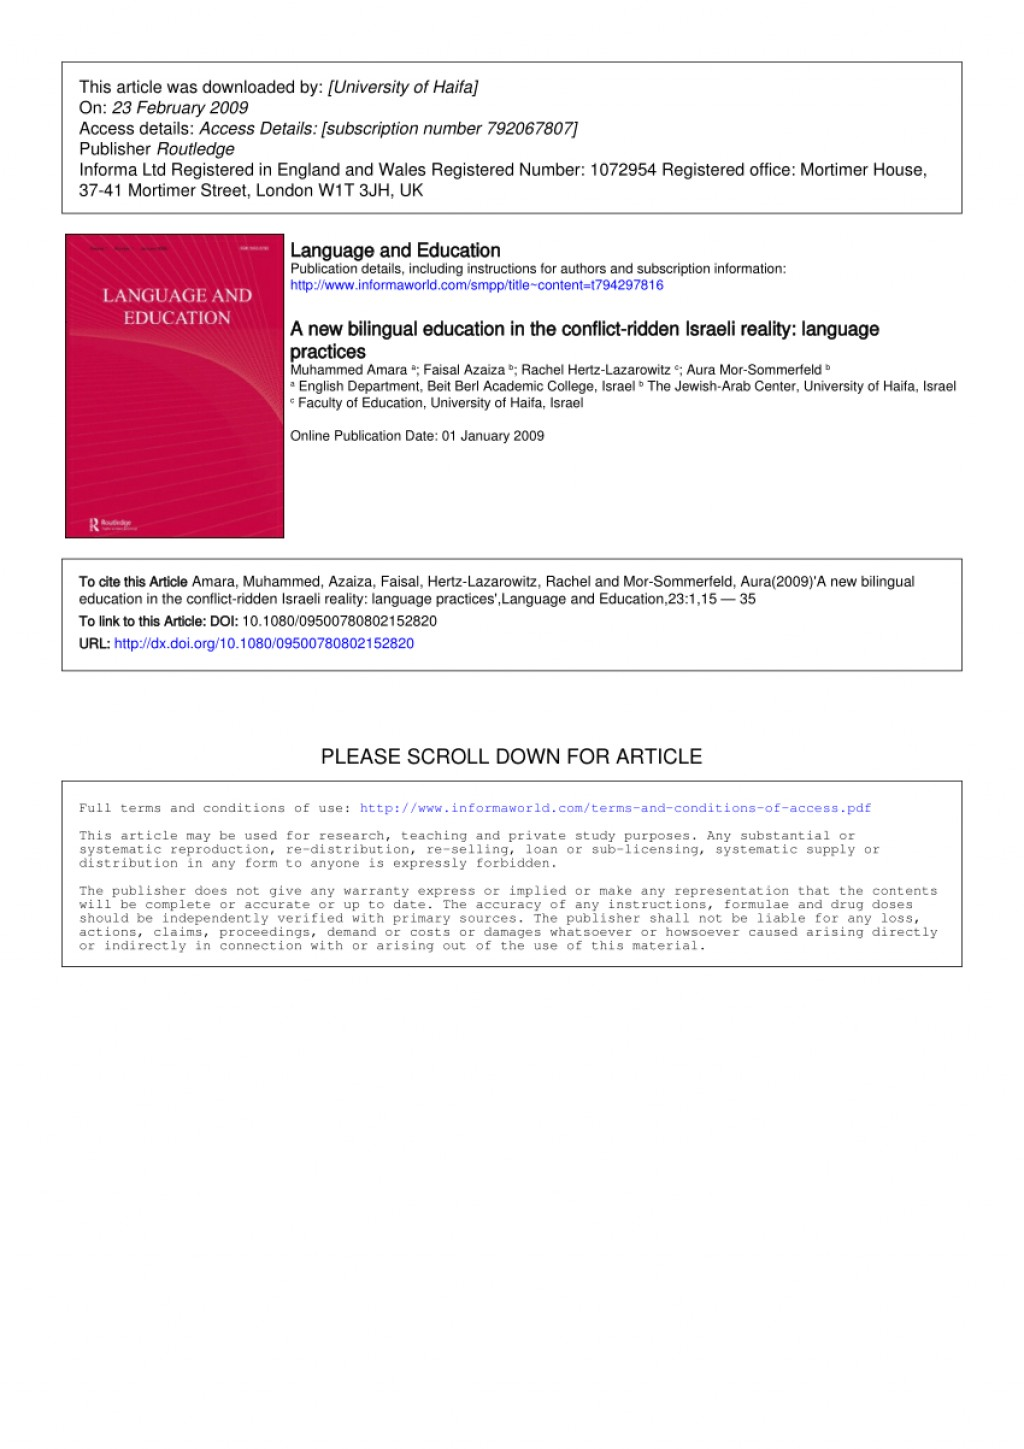 008 Largepreview Research Paper Bilingual Education Unusual Pdf Large